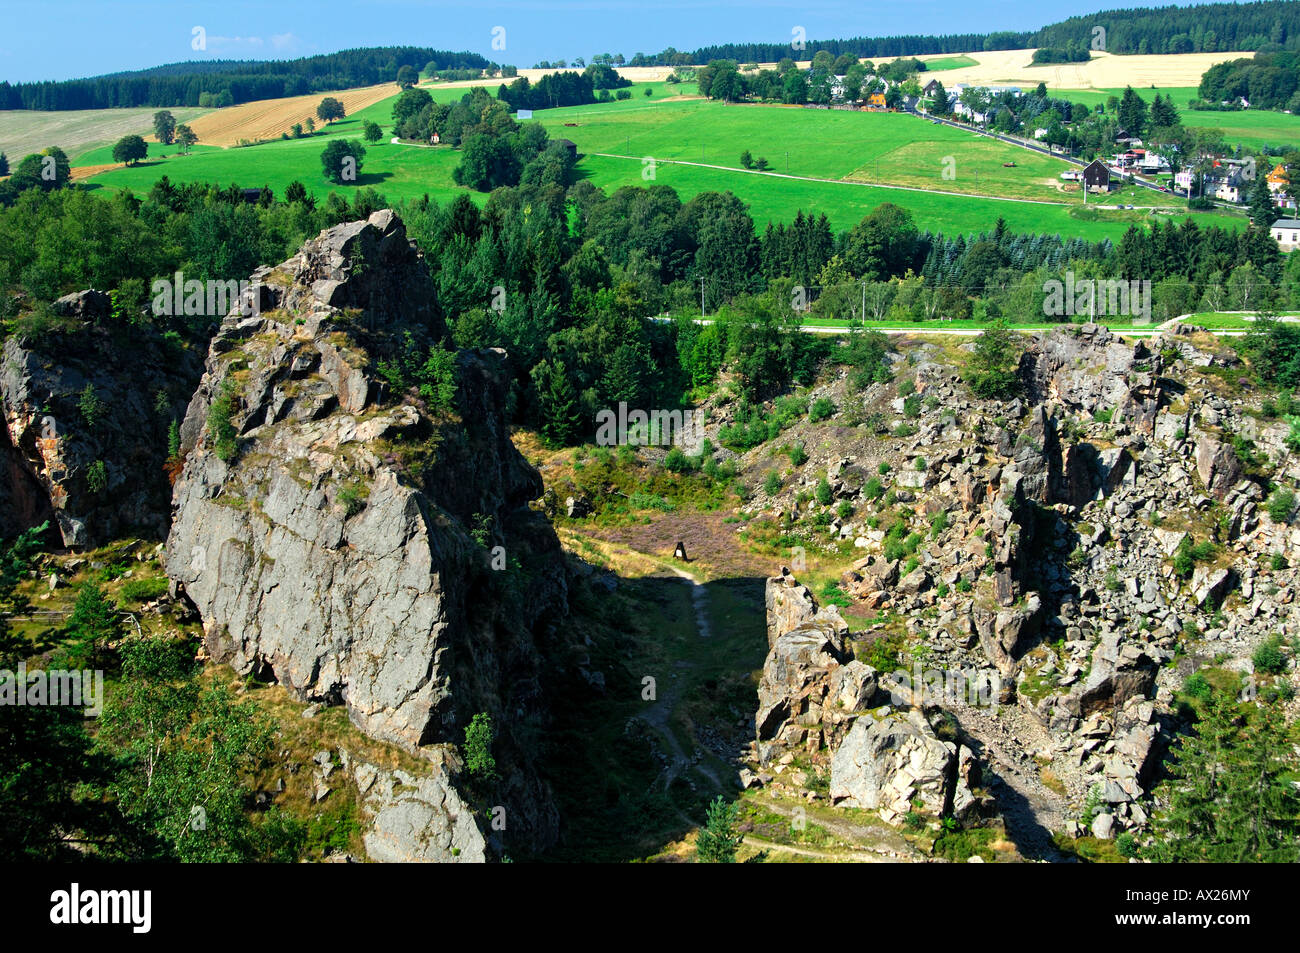 Collapse crater of an old tin mine, Geyer, Ore Mountains, Saxony, Germany - Stock Image